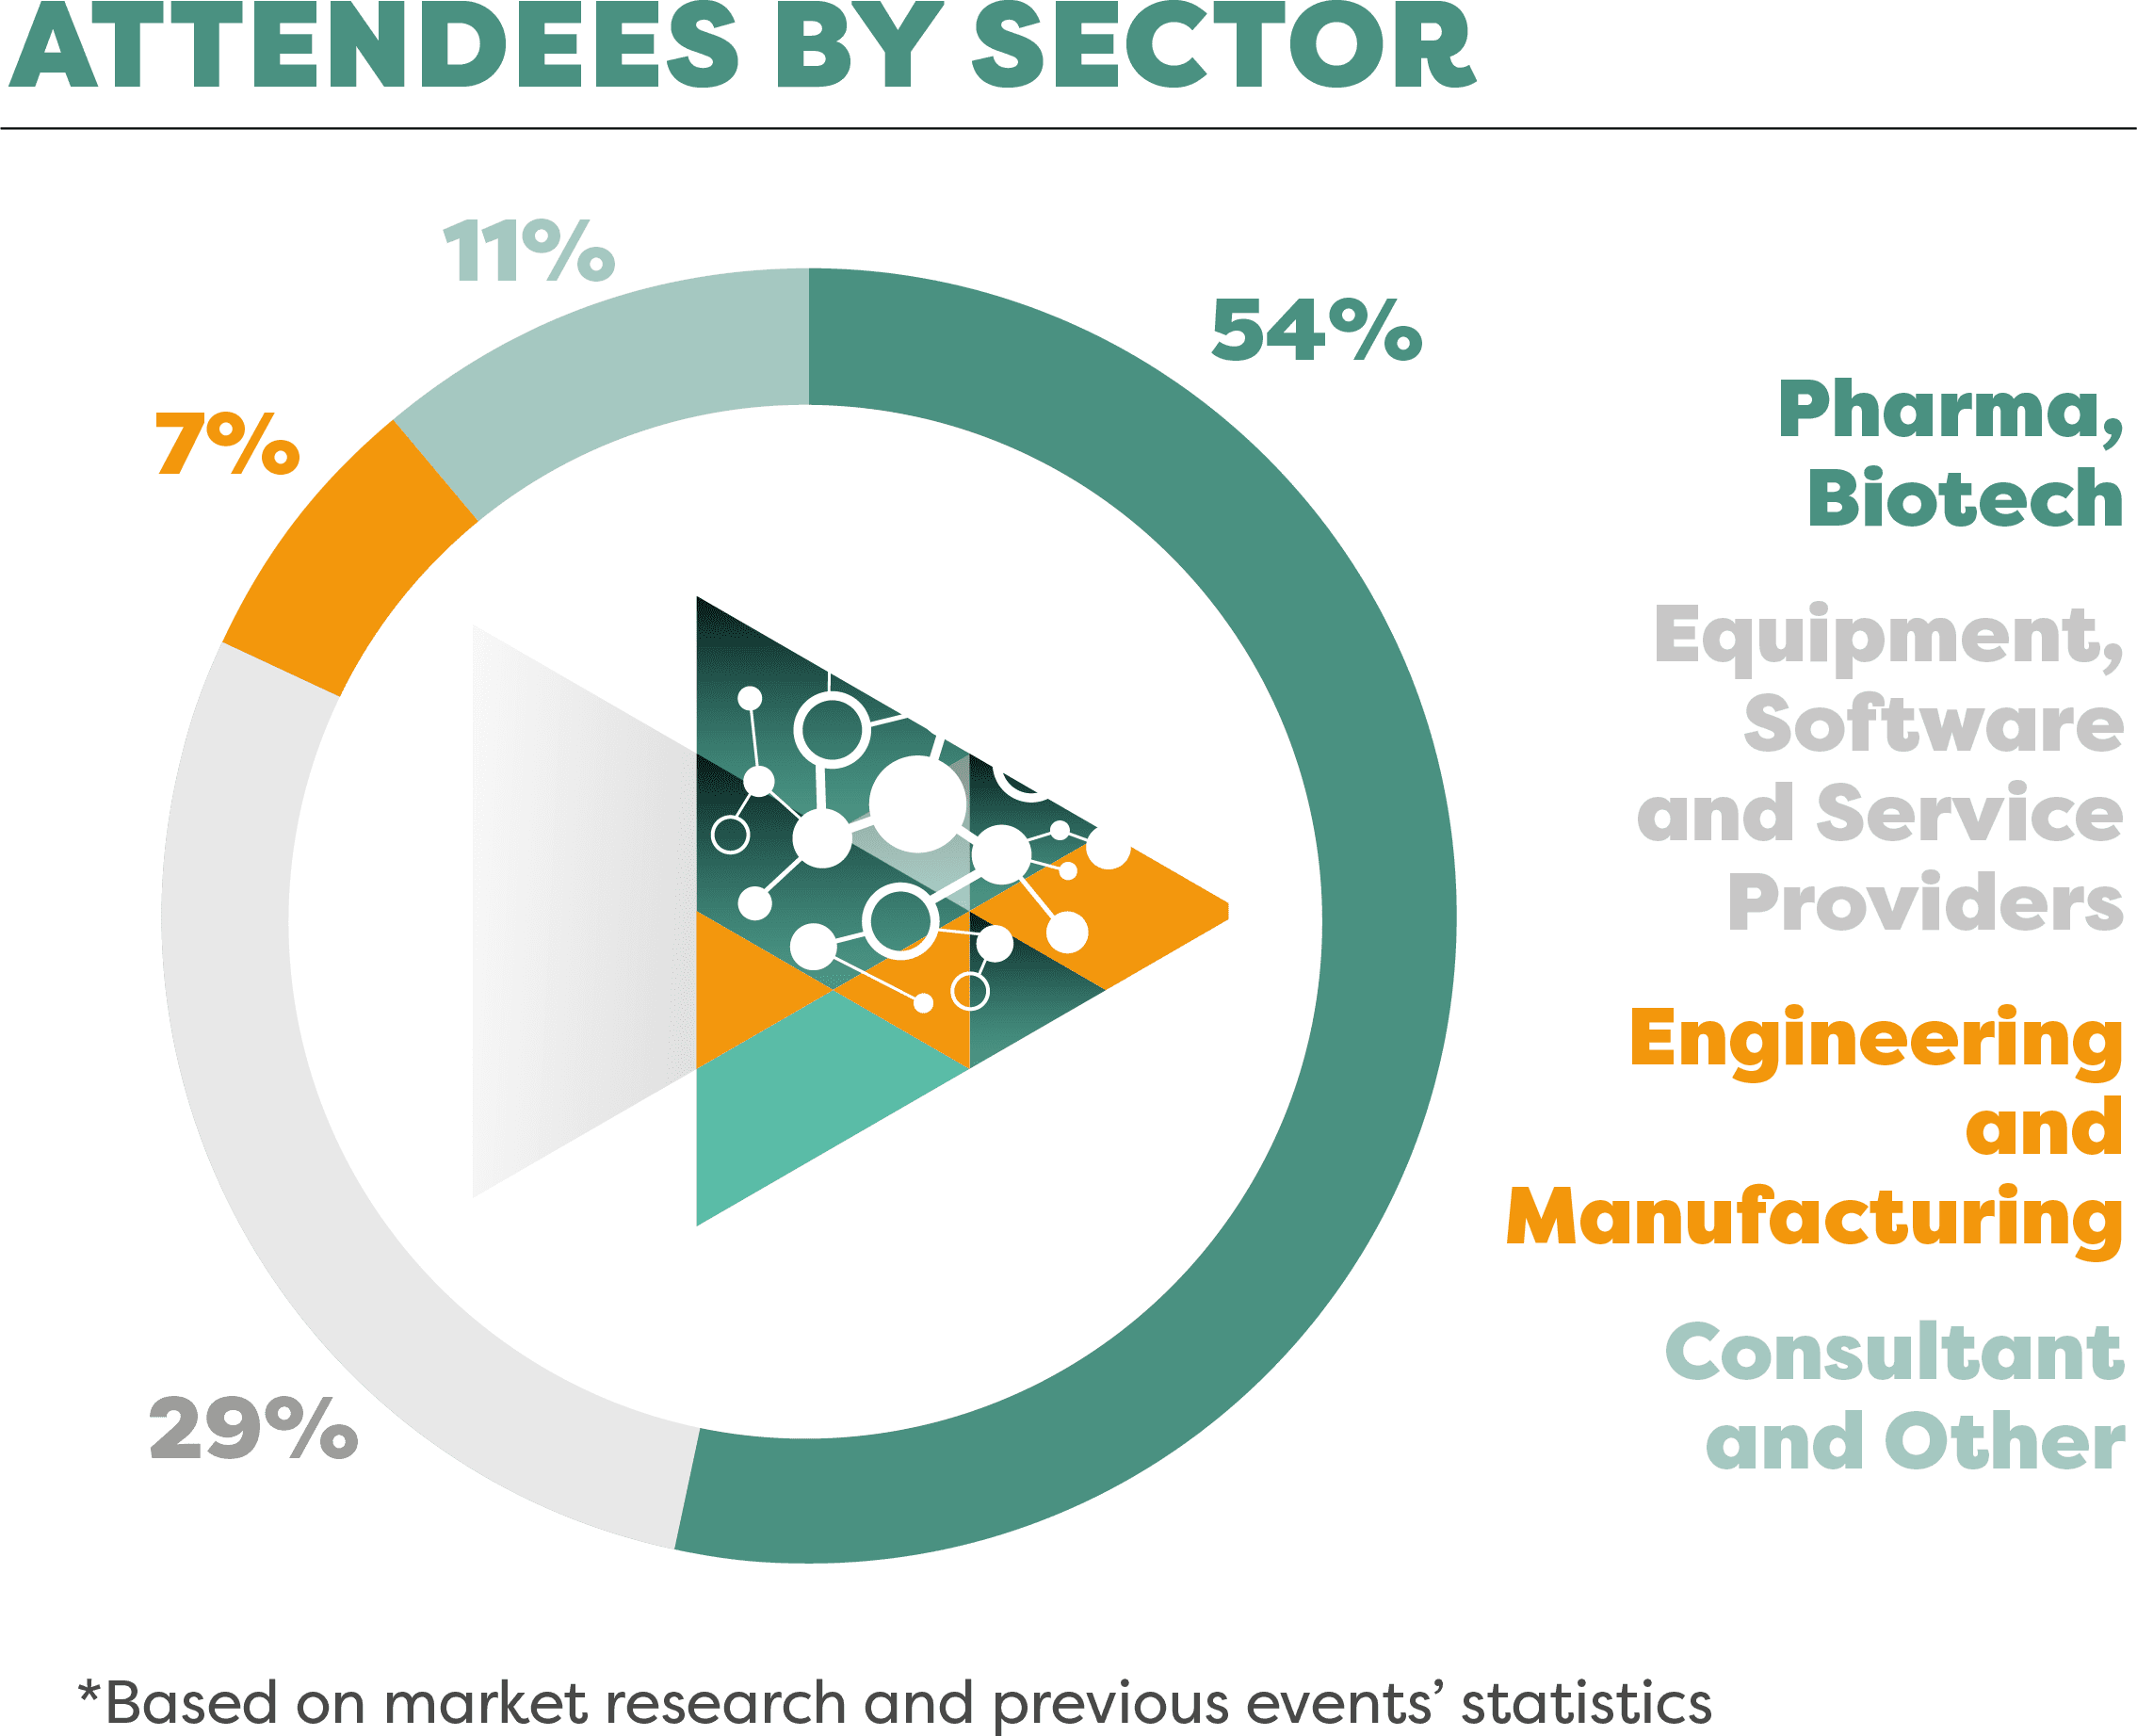 Attendees by Business Sector